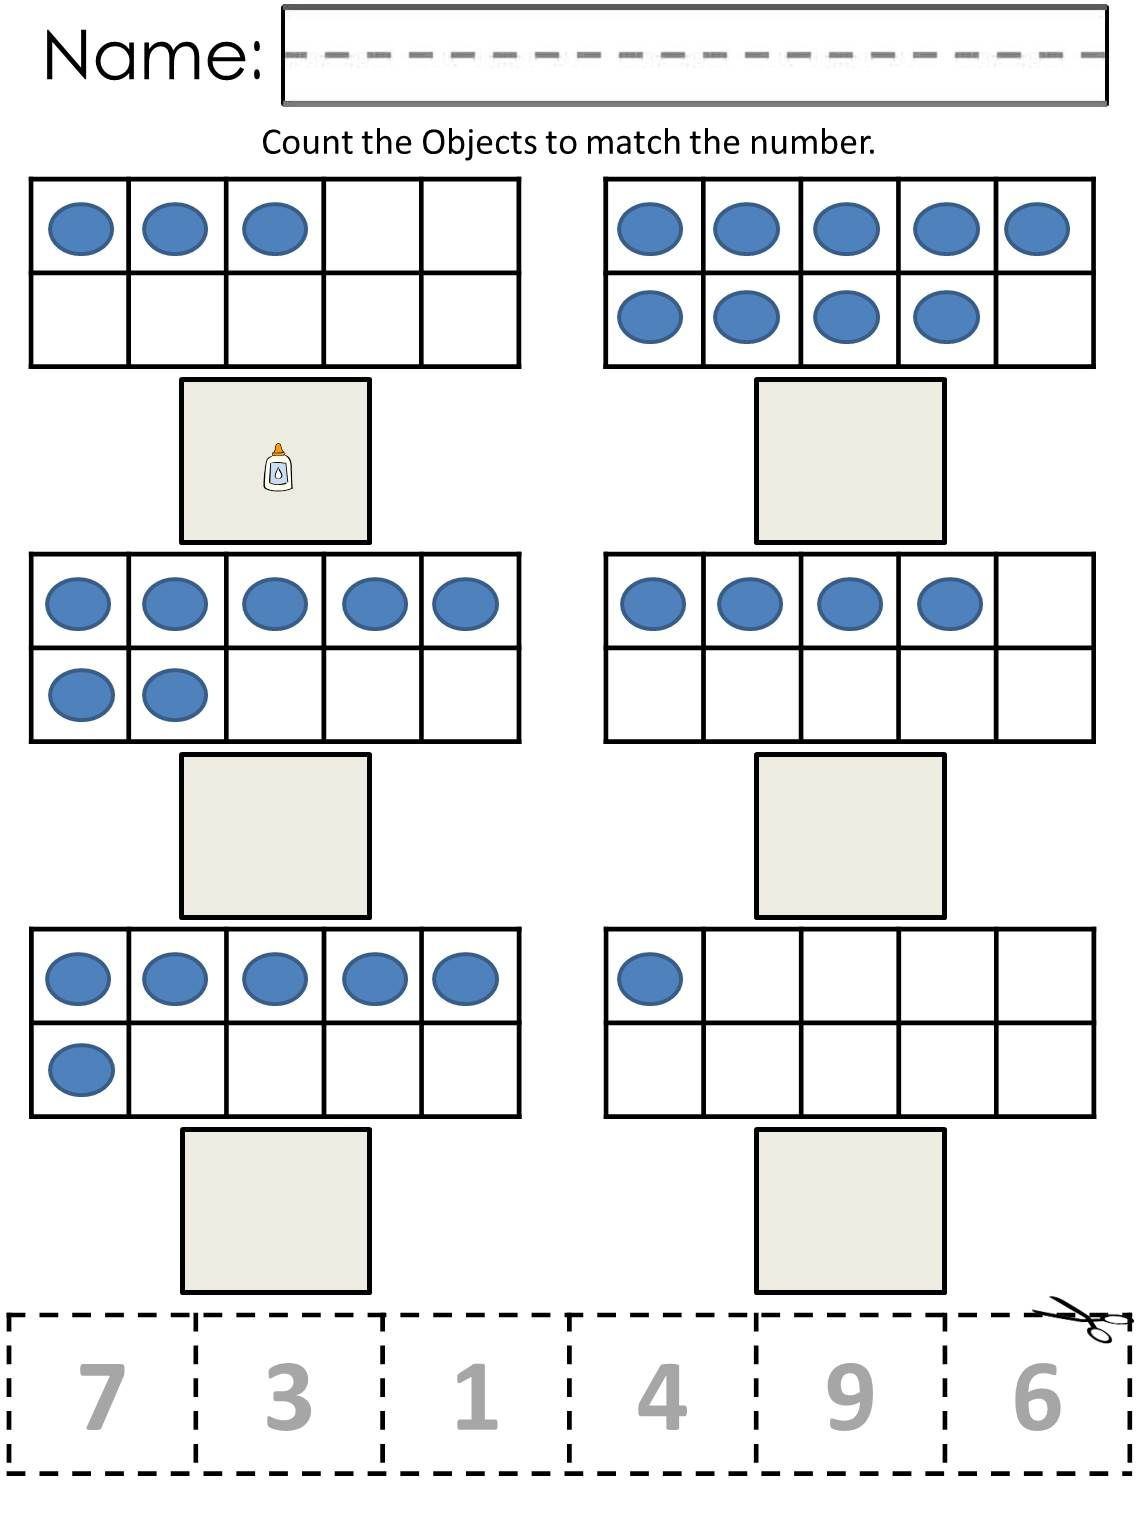 medium resolution of Ten Frame Counting Worksheets Now Available at www.AutismComplete.com   Math  worksheets